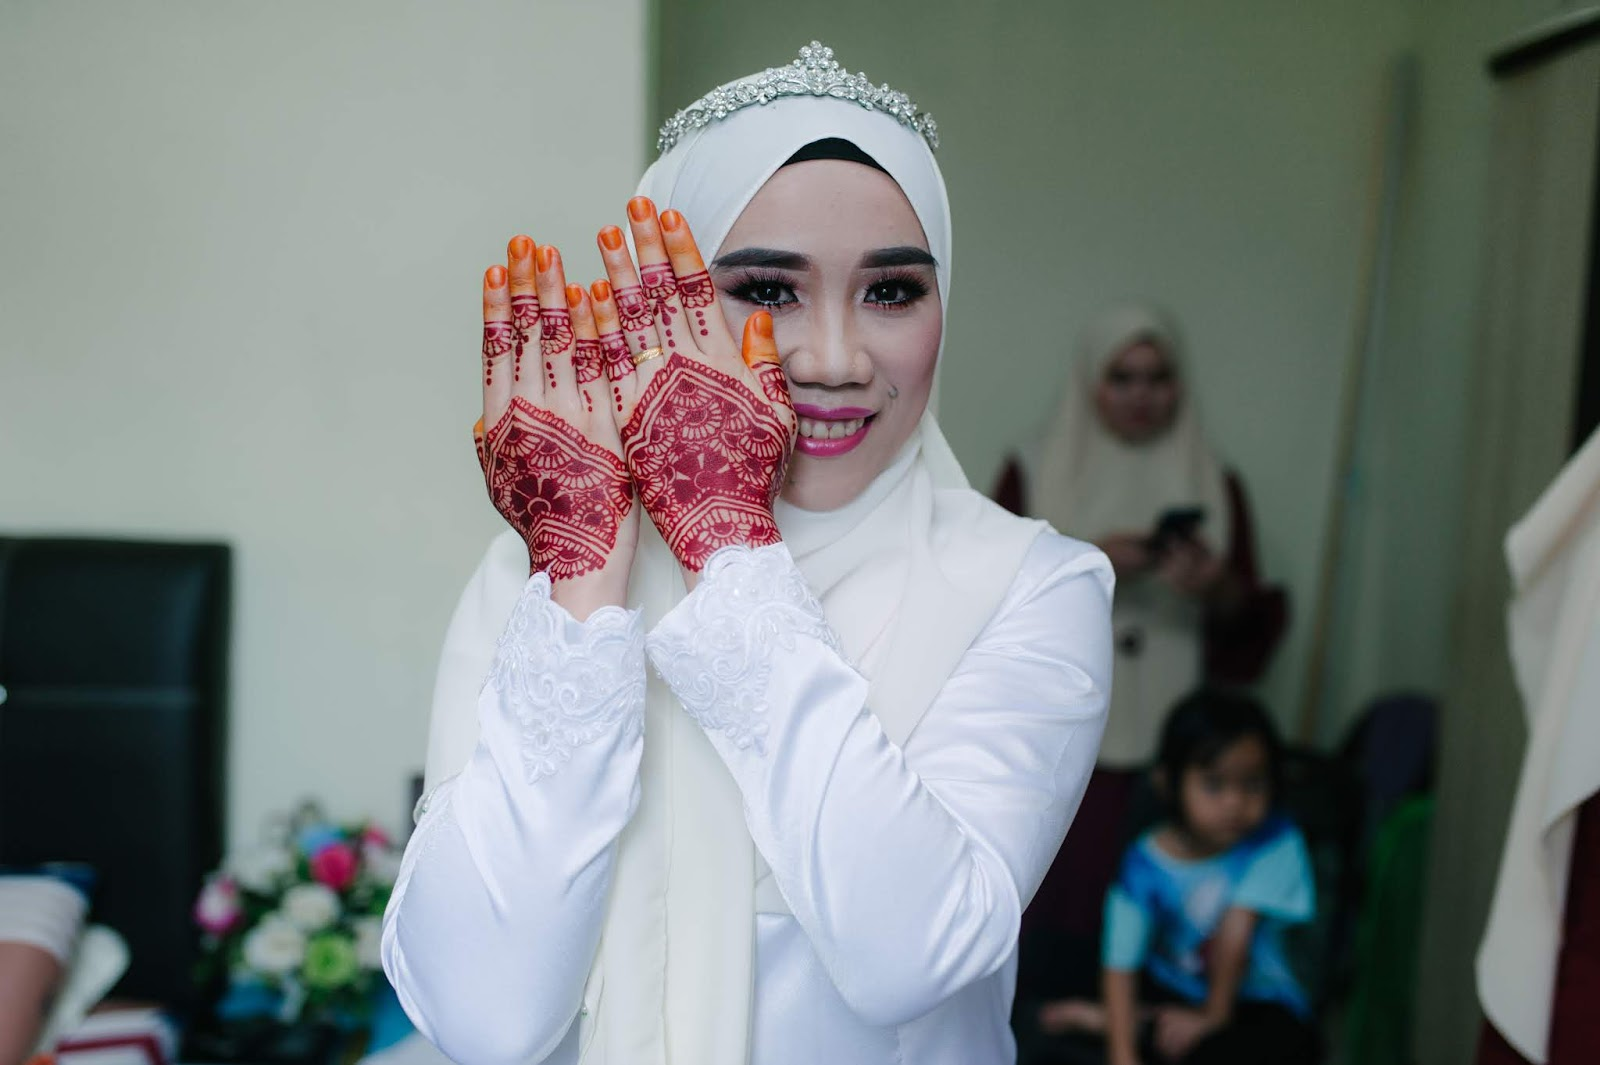 Ujik + Rozaliah | 24 March 2018 | Solemnization